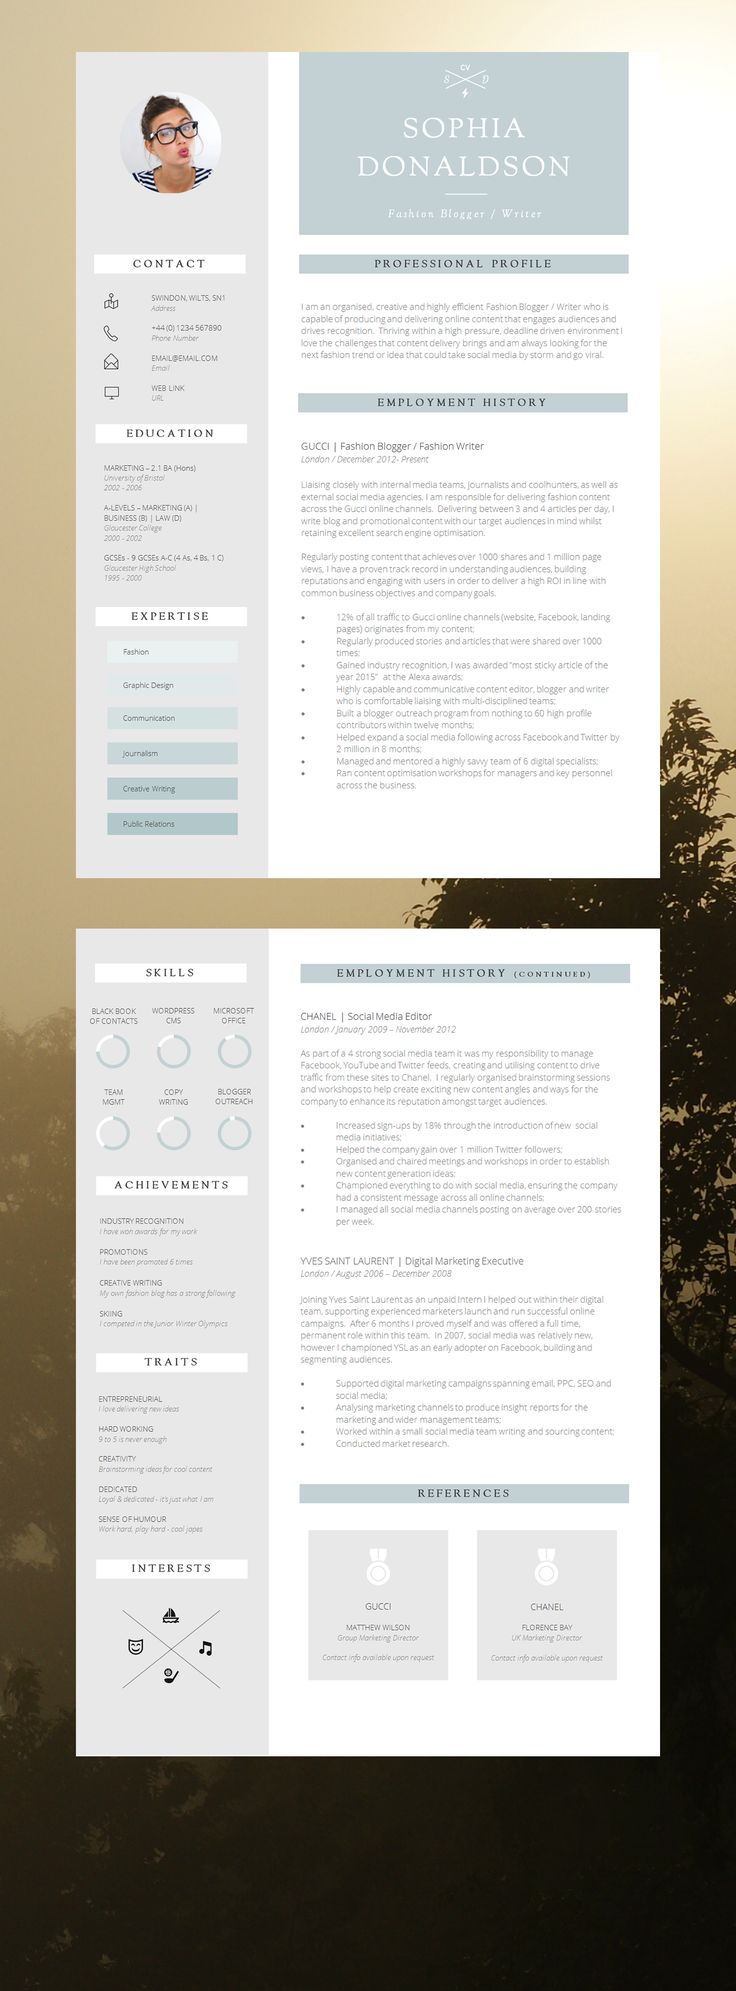 Unique Resumes Templates Best Ideas About Resume Templates Resume